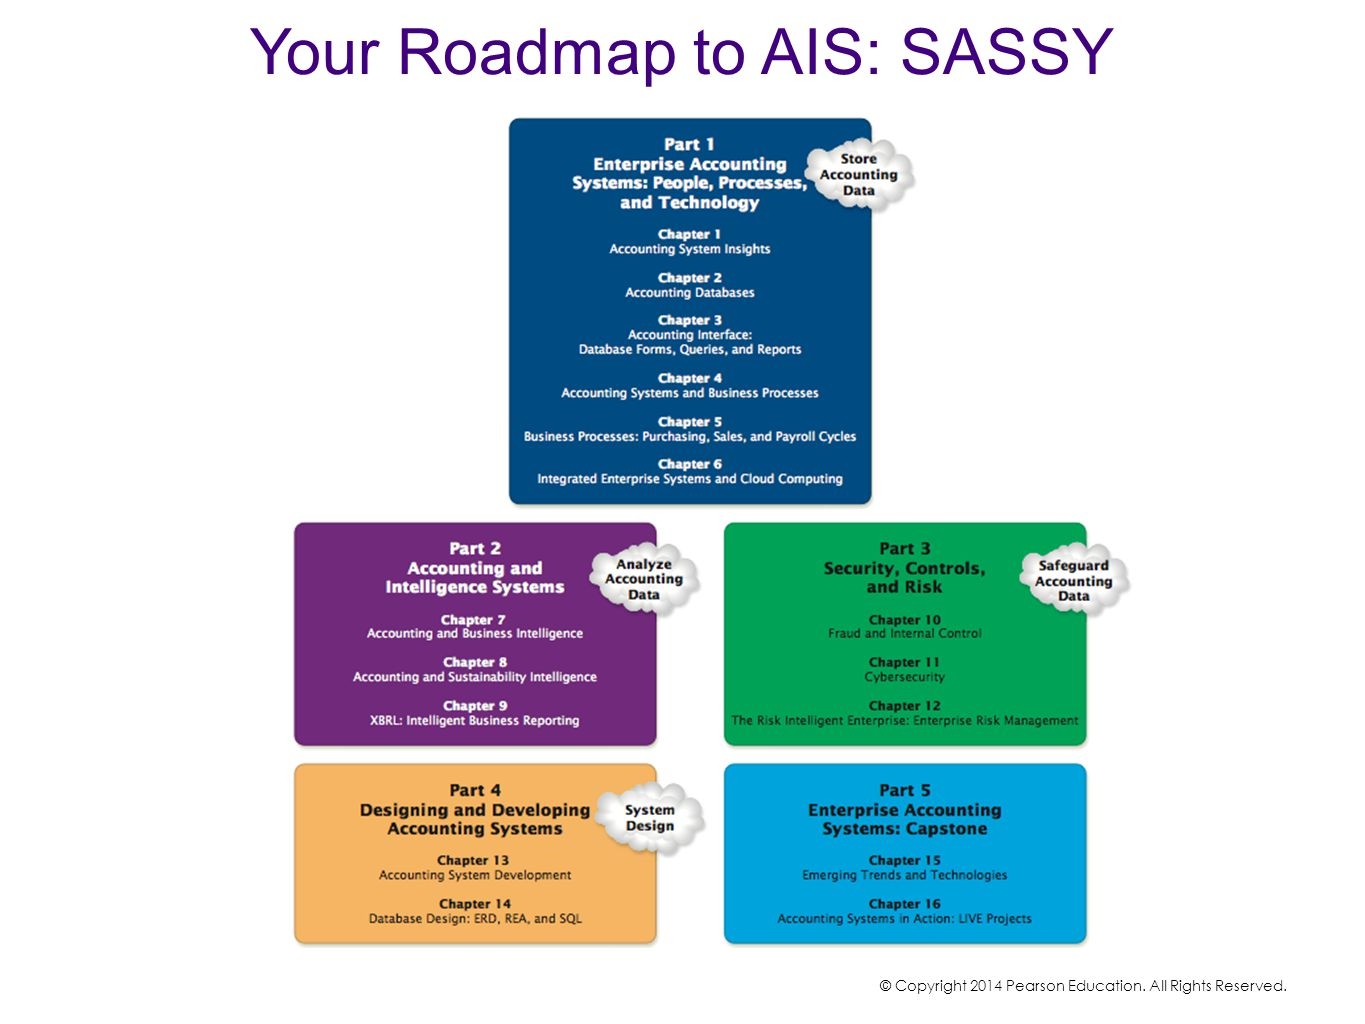 Your Roadmap to AIS: SASSY